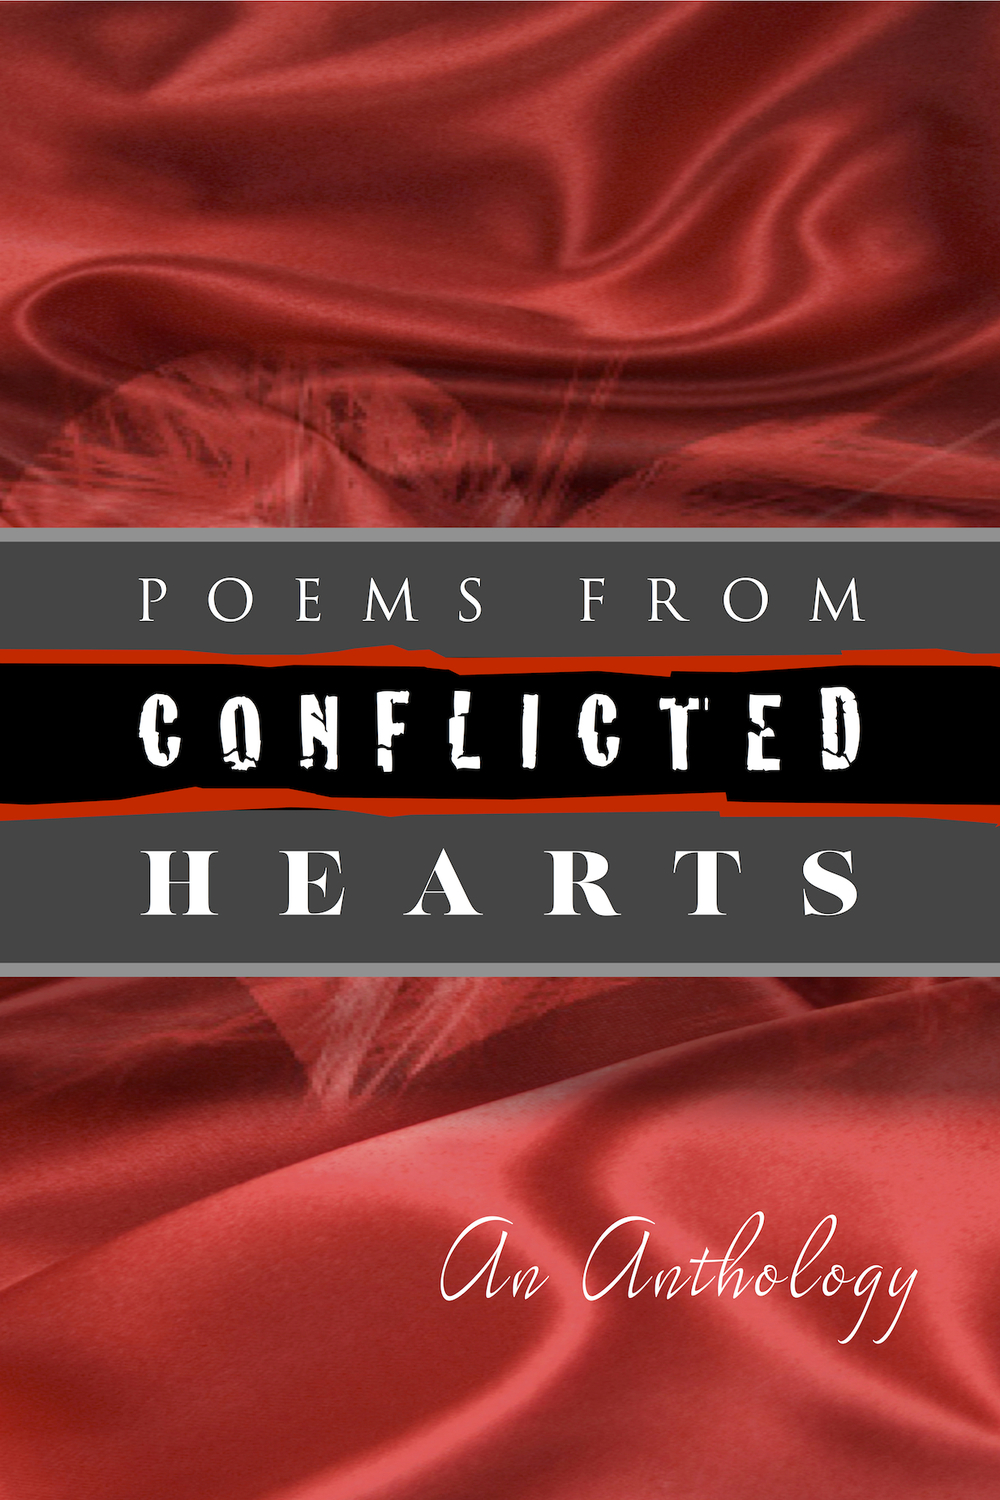 Poems From Conflicted Hearts - Front Cover - New Final A copy.jpg